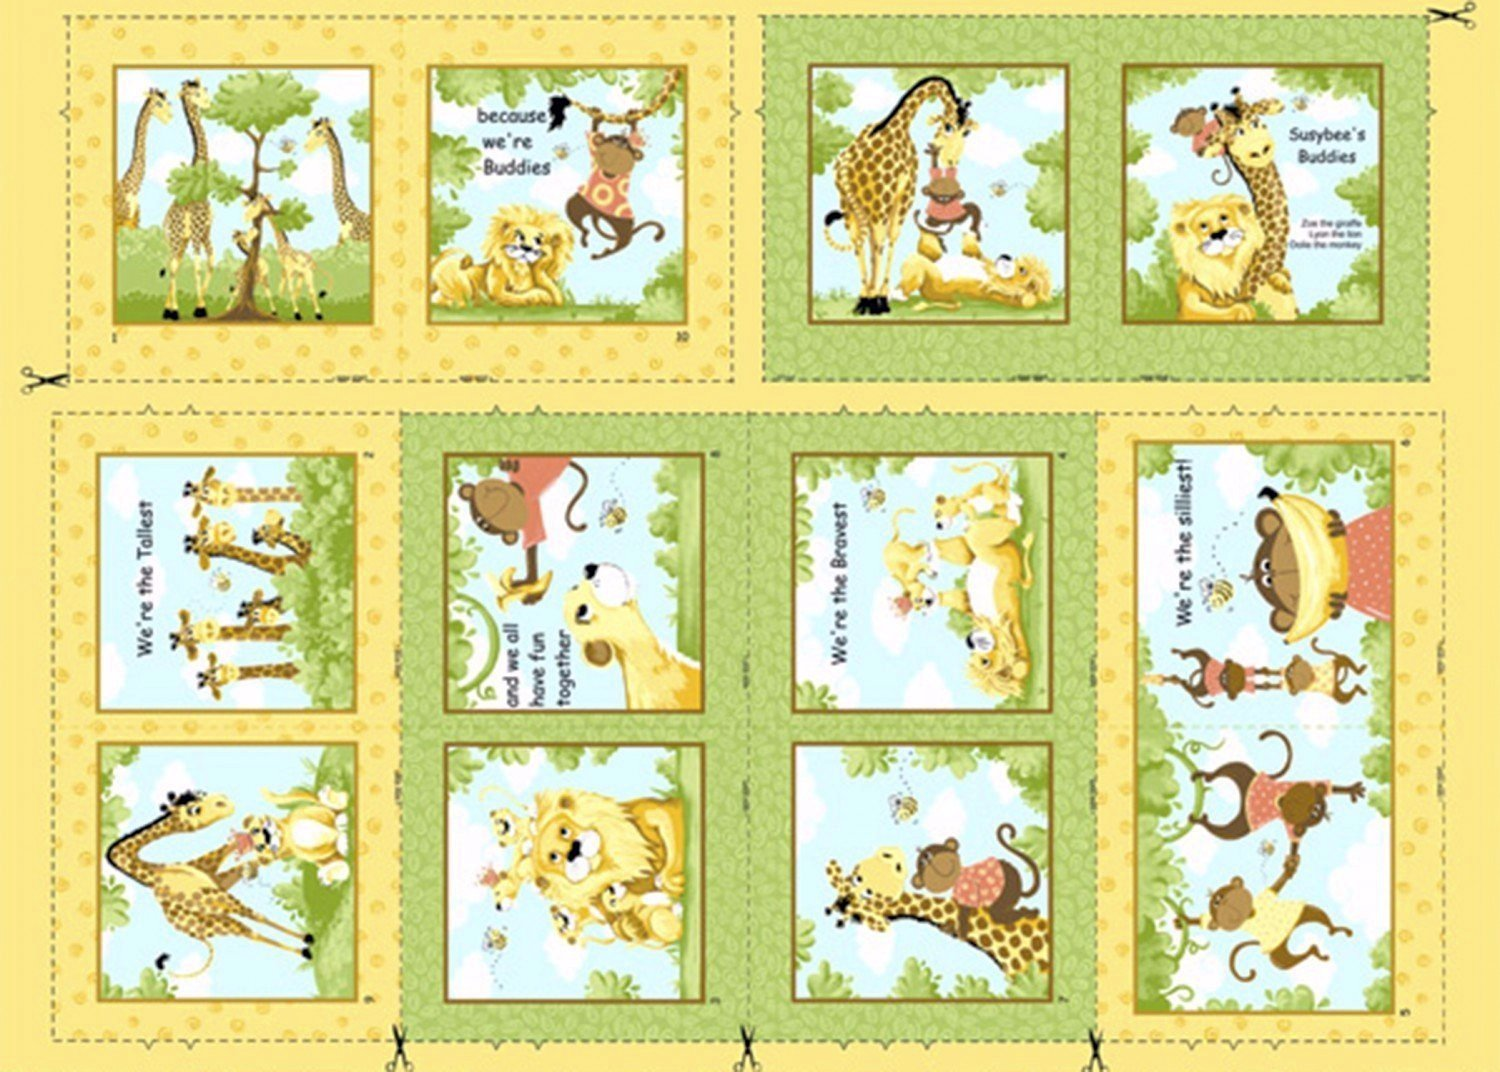 Susybee S Buddies Fabric Book Panel To Sew Quilt Girls